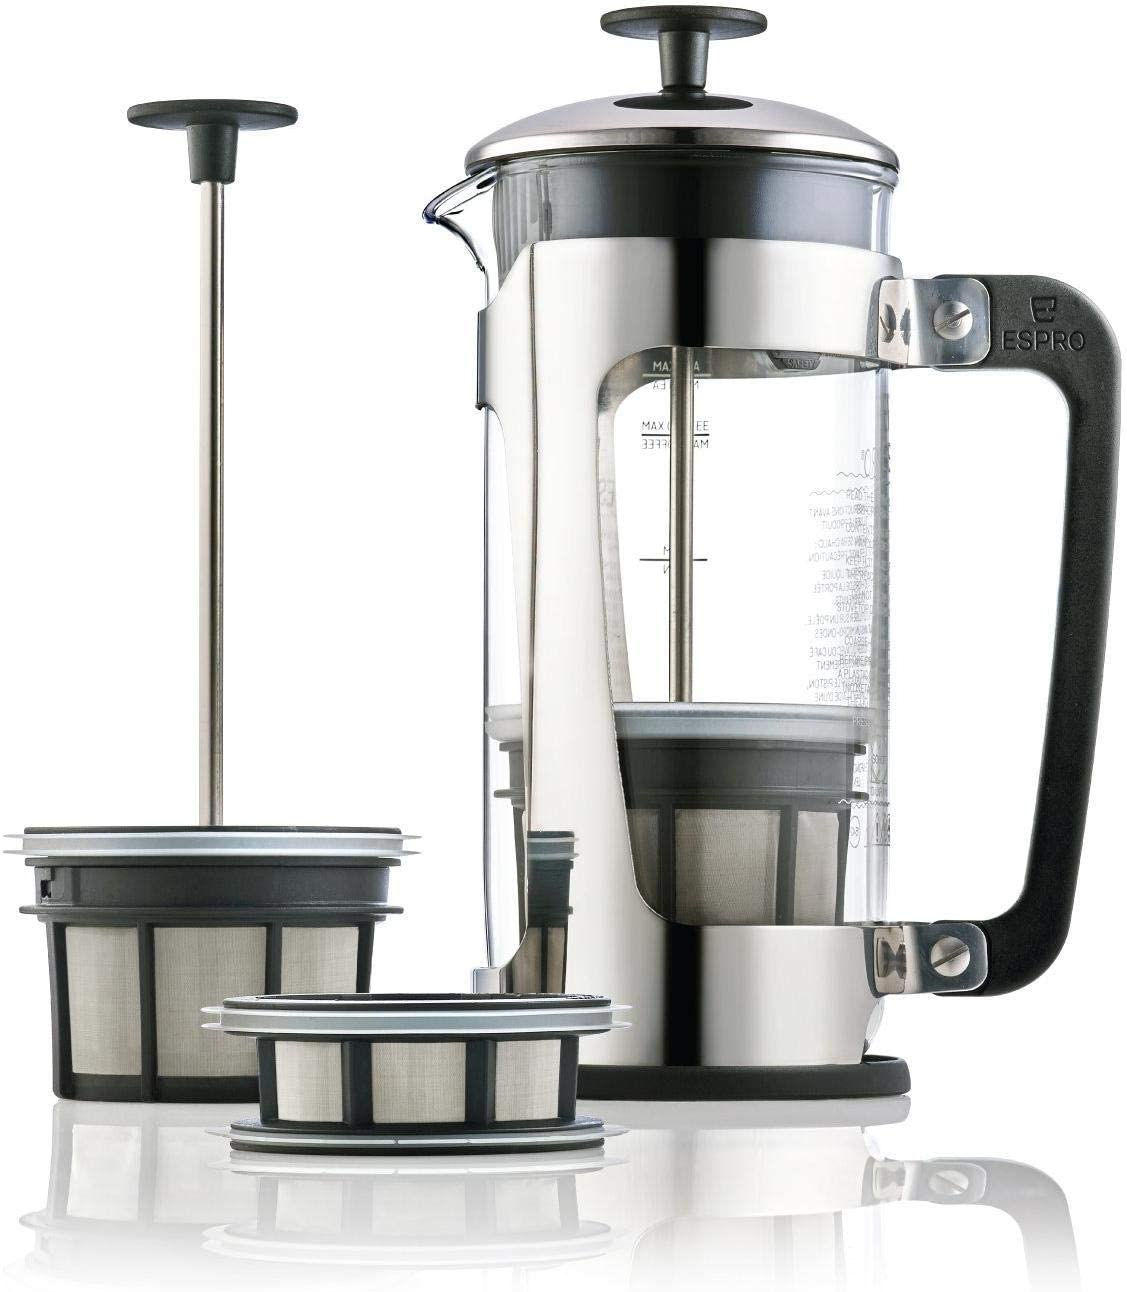 Espro Press P5 32oz French Press for Tea Glass Polished Stainless